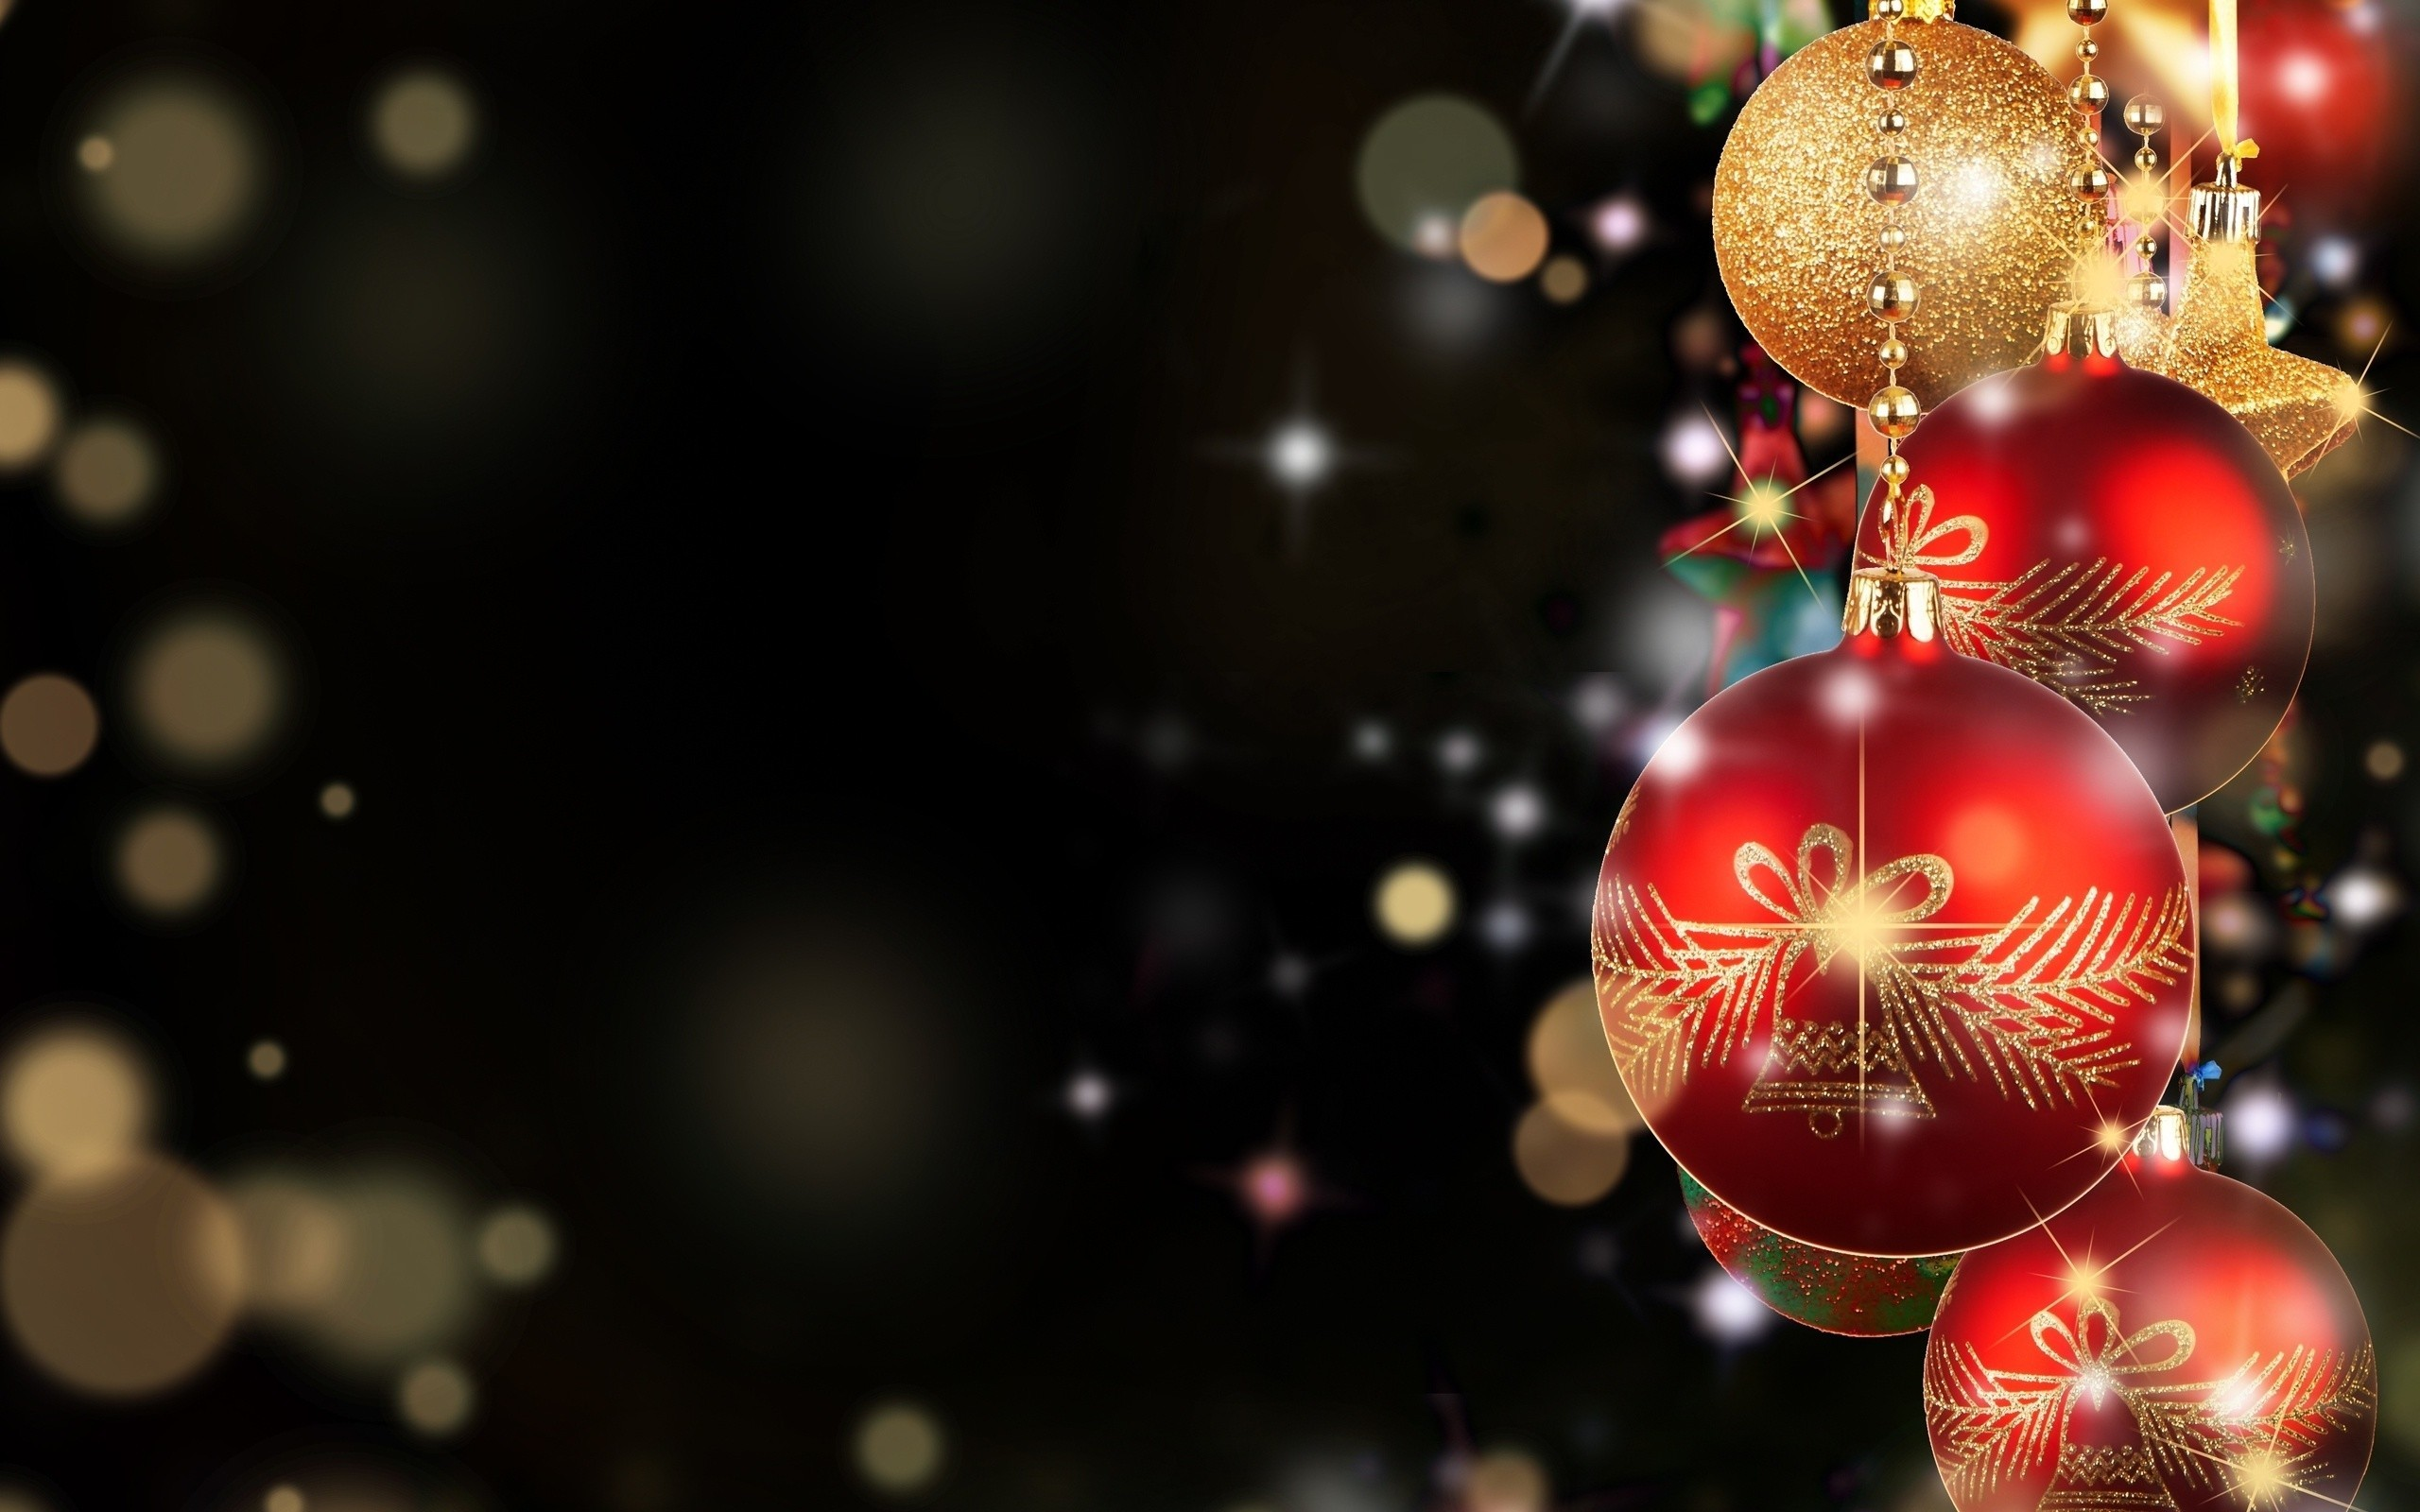 Free Christmas Wallpaper Backgrounds.Christmas Wallpapers Backgrounds 71 Background Pictures